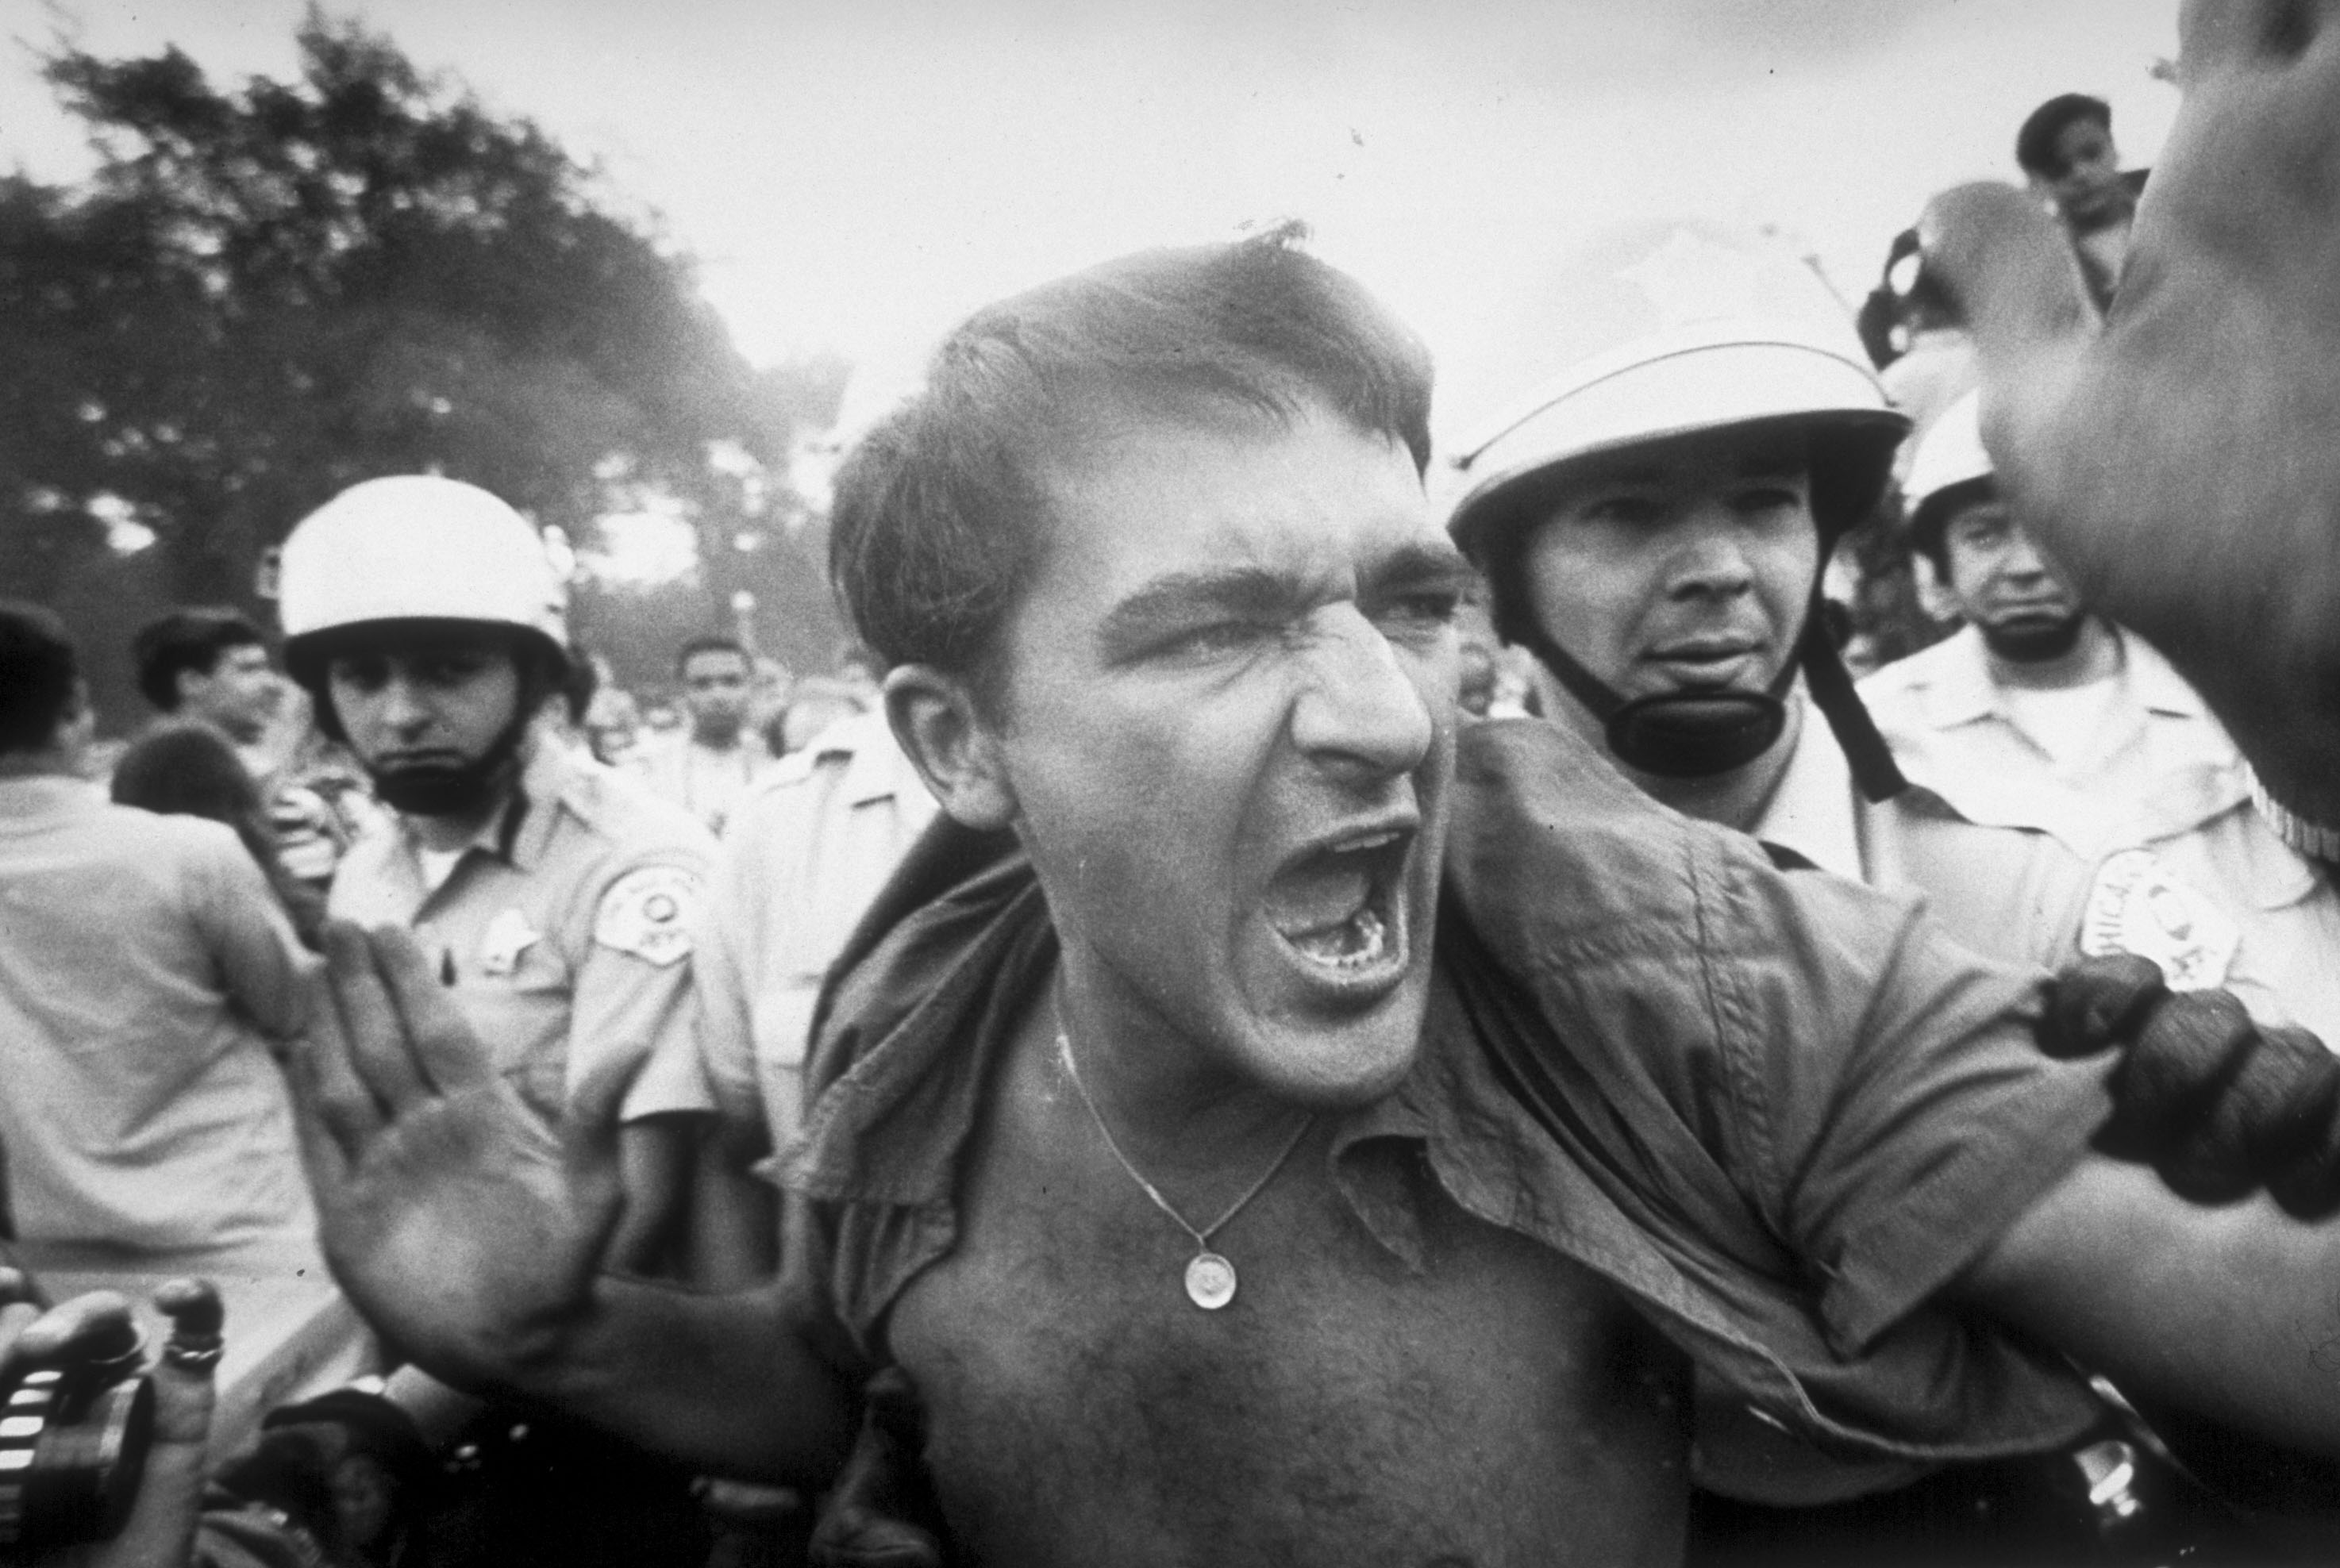 Foto: Lee Balterman/The LIFE Picture Collection/Getty Images.